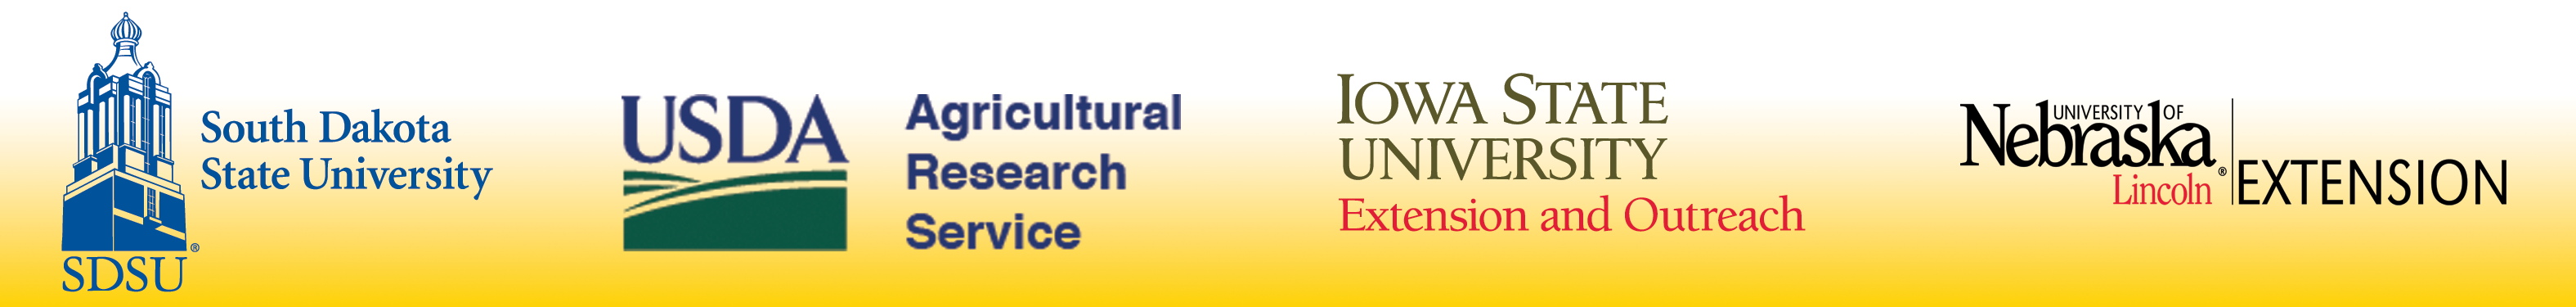 project partner logos - South Dakota State University, USDA-ARS, Iowa State University, and University of Nebraska - Lincoln